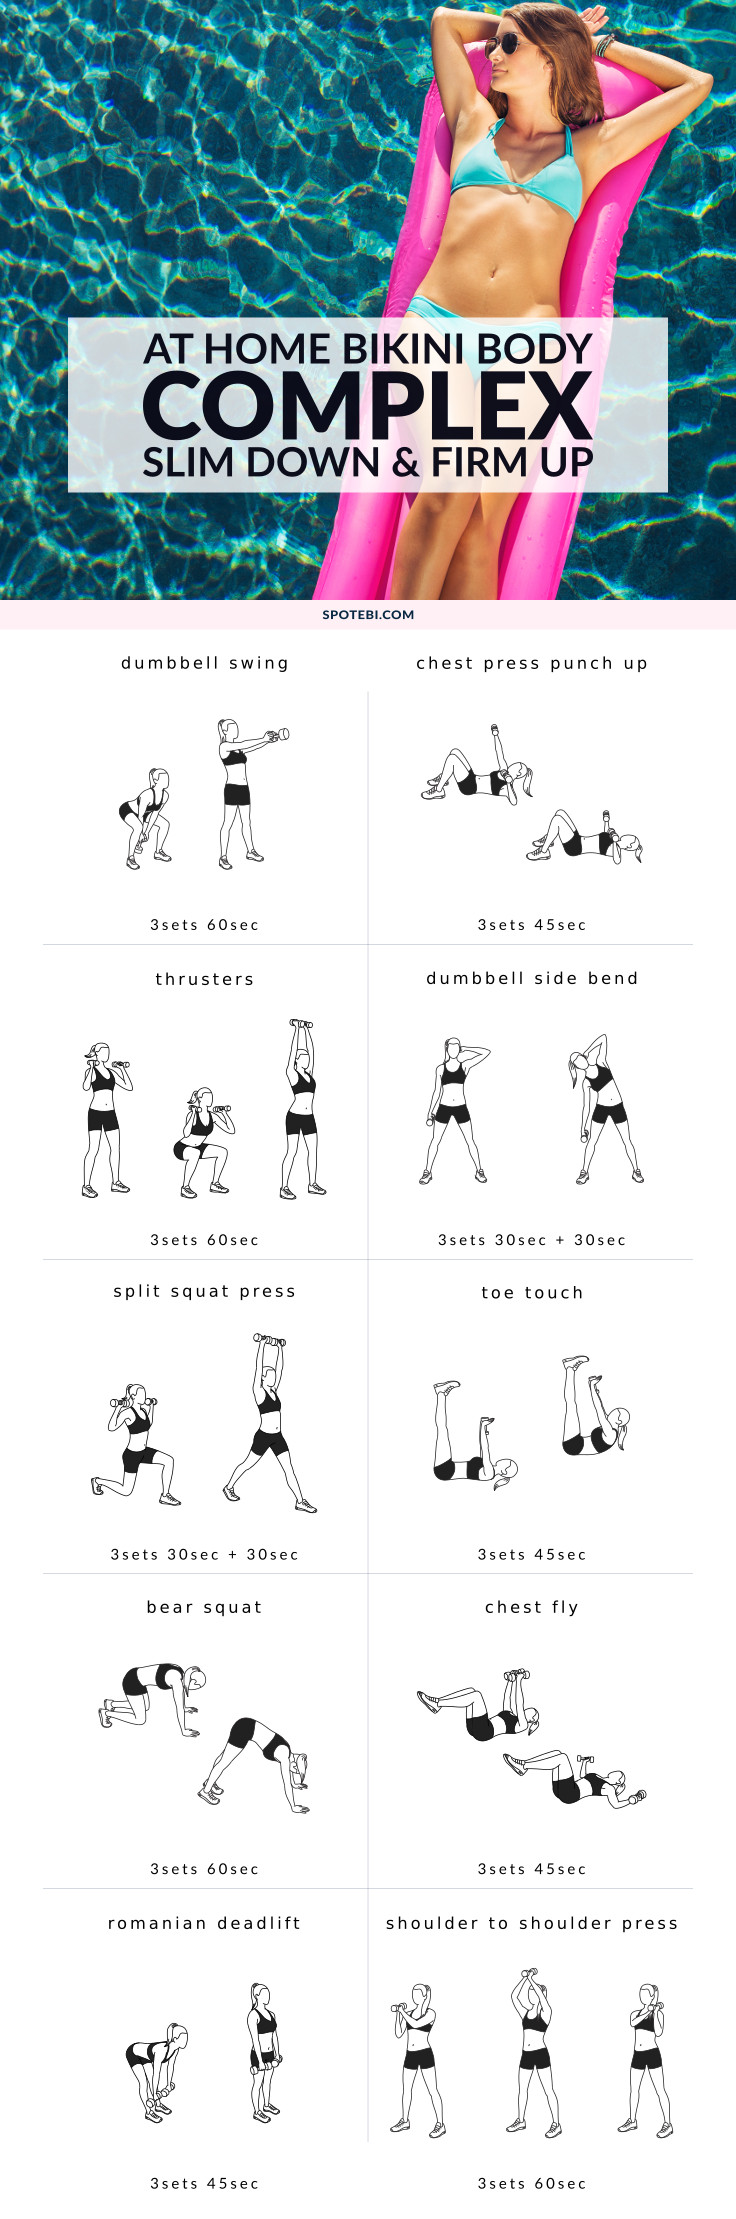 Slim down and firm up with this Bikini Body Complex designed to help you burn mega calories and deliver long-lasting results. Turn on the music, get in the zone, push yourself, and focus on what you want the most! https://www.spotebi.com/workout-routines/bikini-body-complex-full-body-workout-for-women/